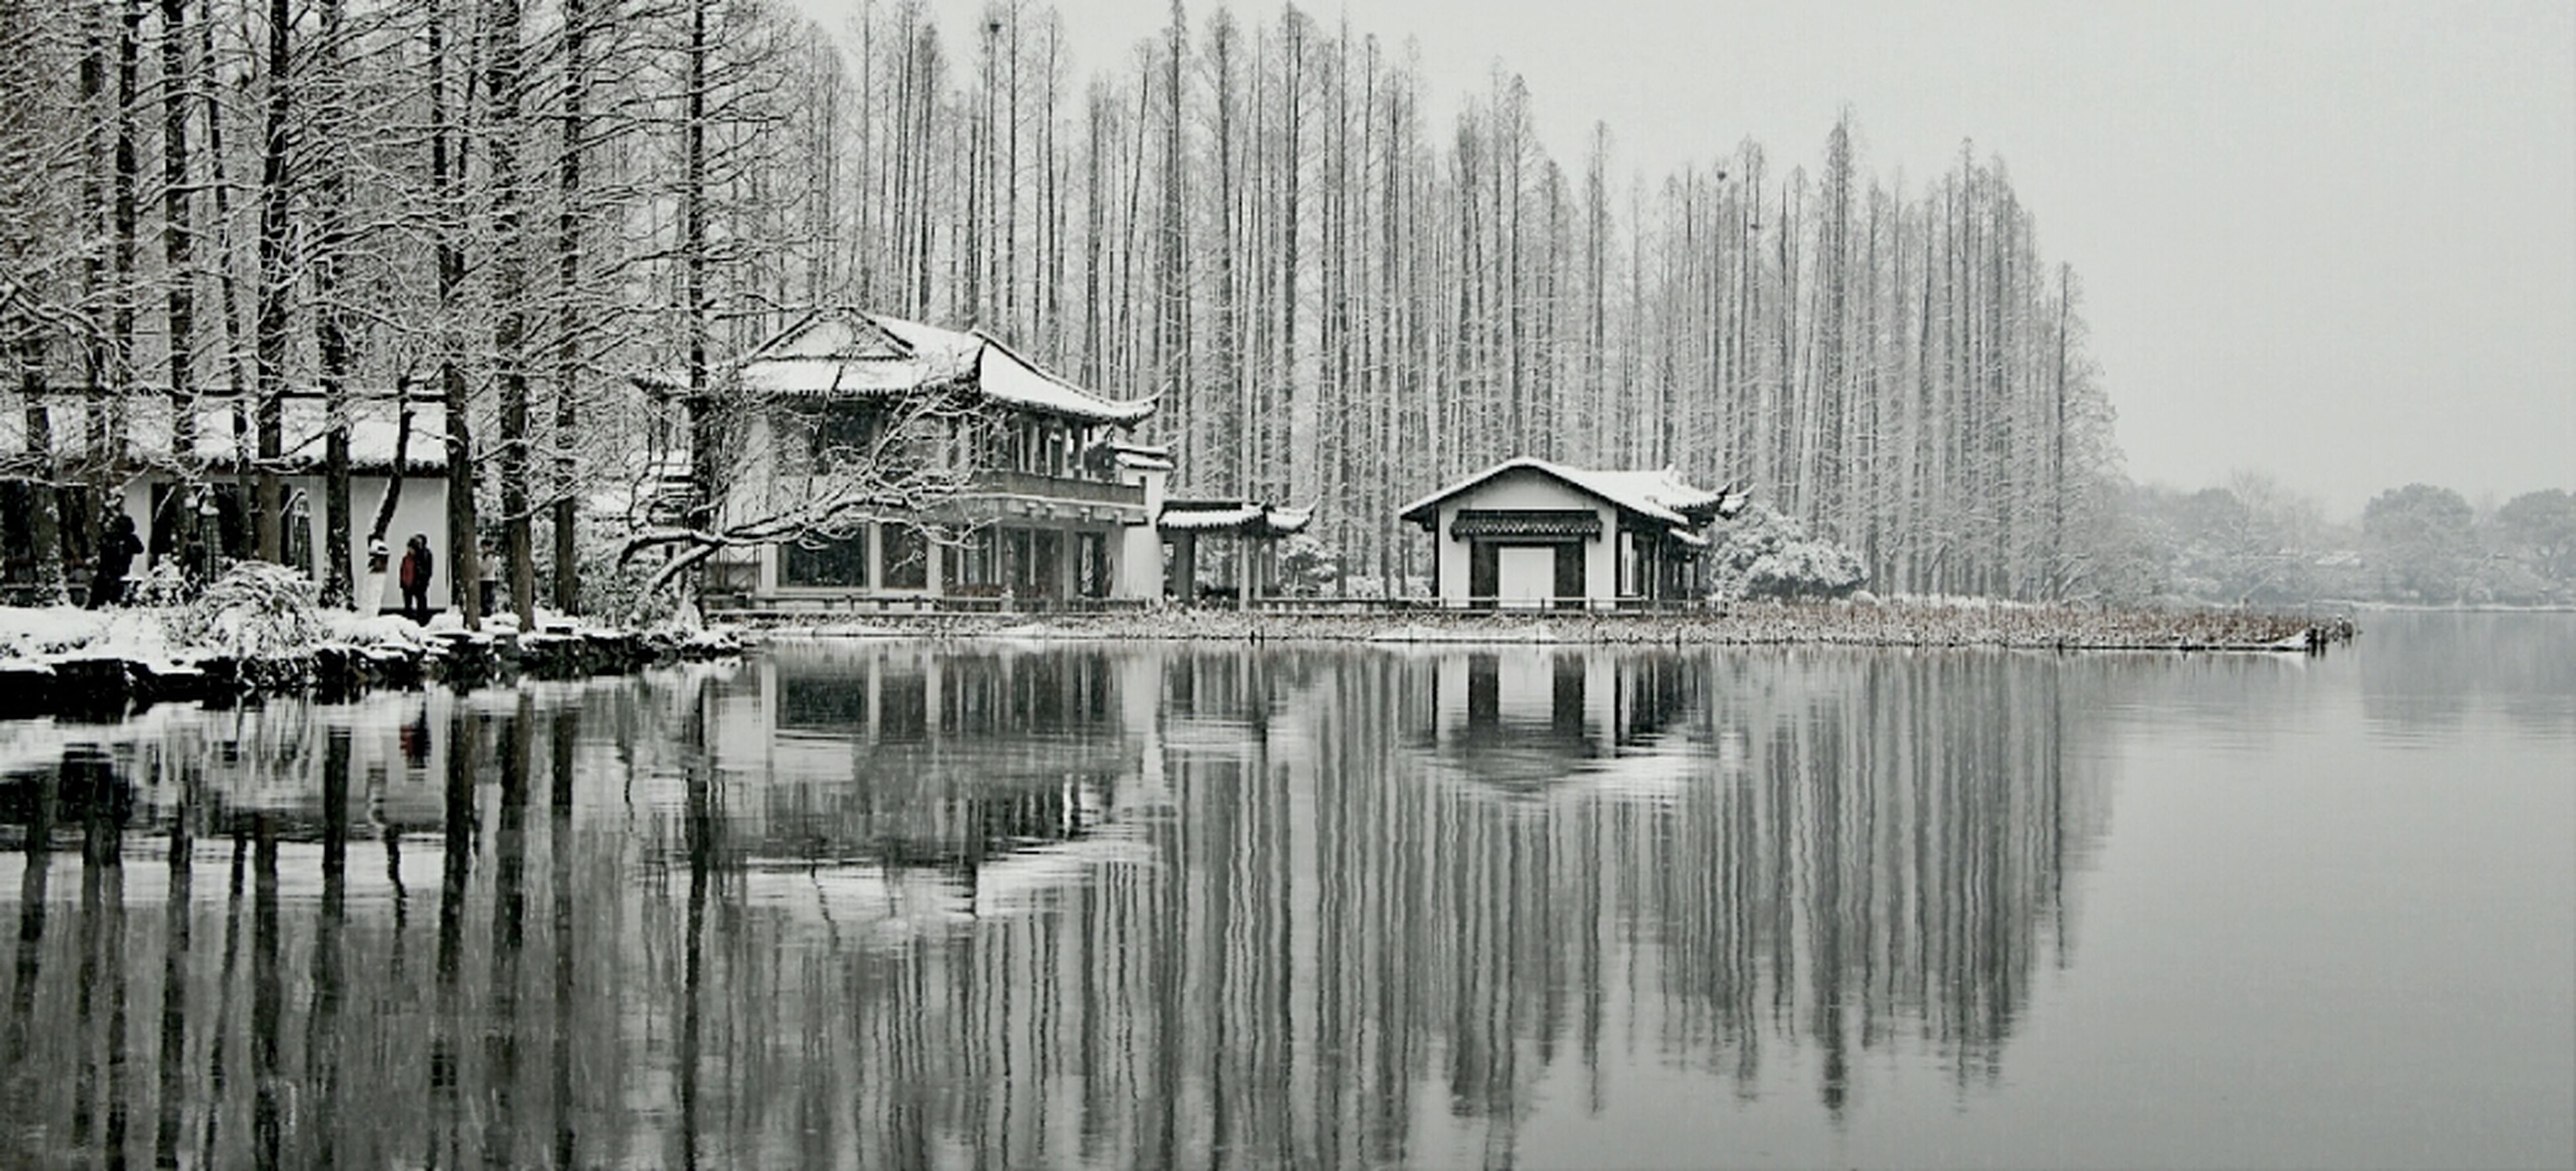 winter, snow, cold temperature, water, built structure, tree, building exterior, architecture, reflection, lake, waterfront, season, tranquility, tranquil scene, nature, weather, river, scenics, frozen, beauty in nature